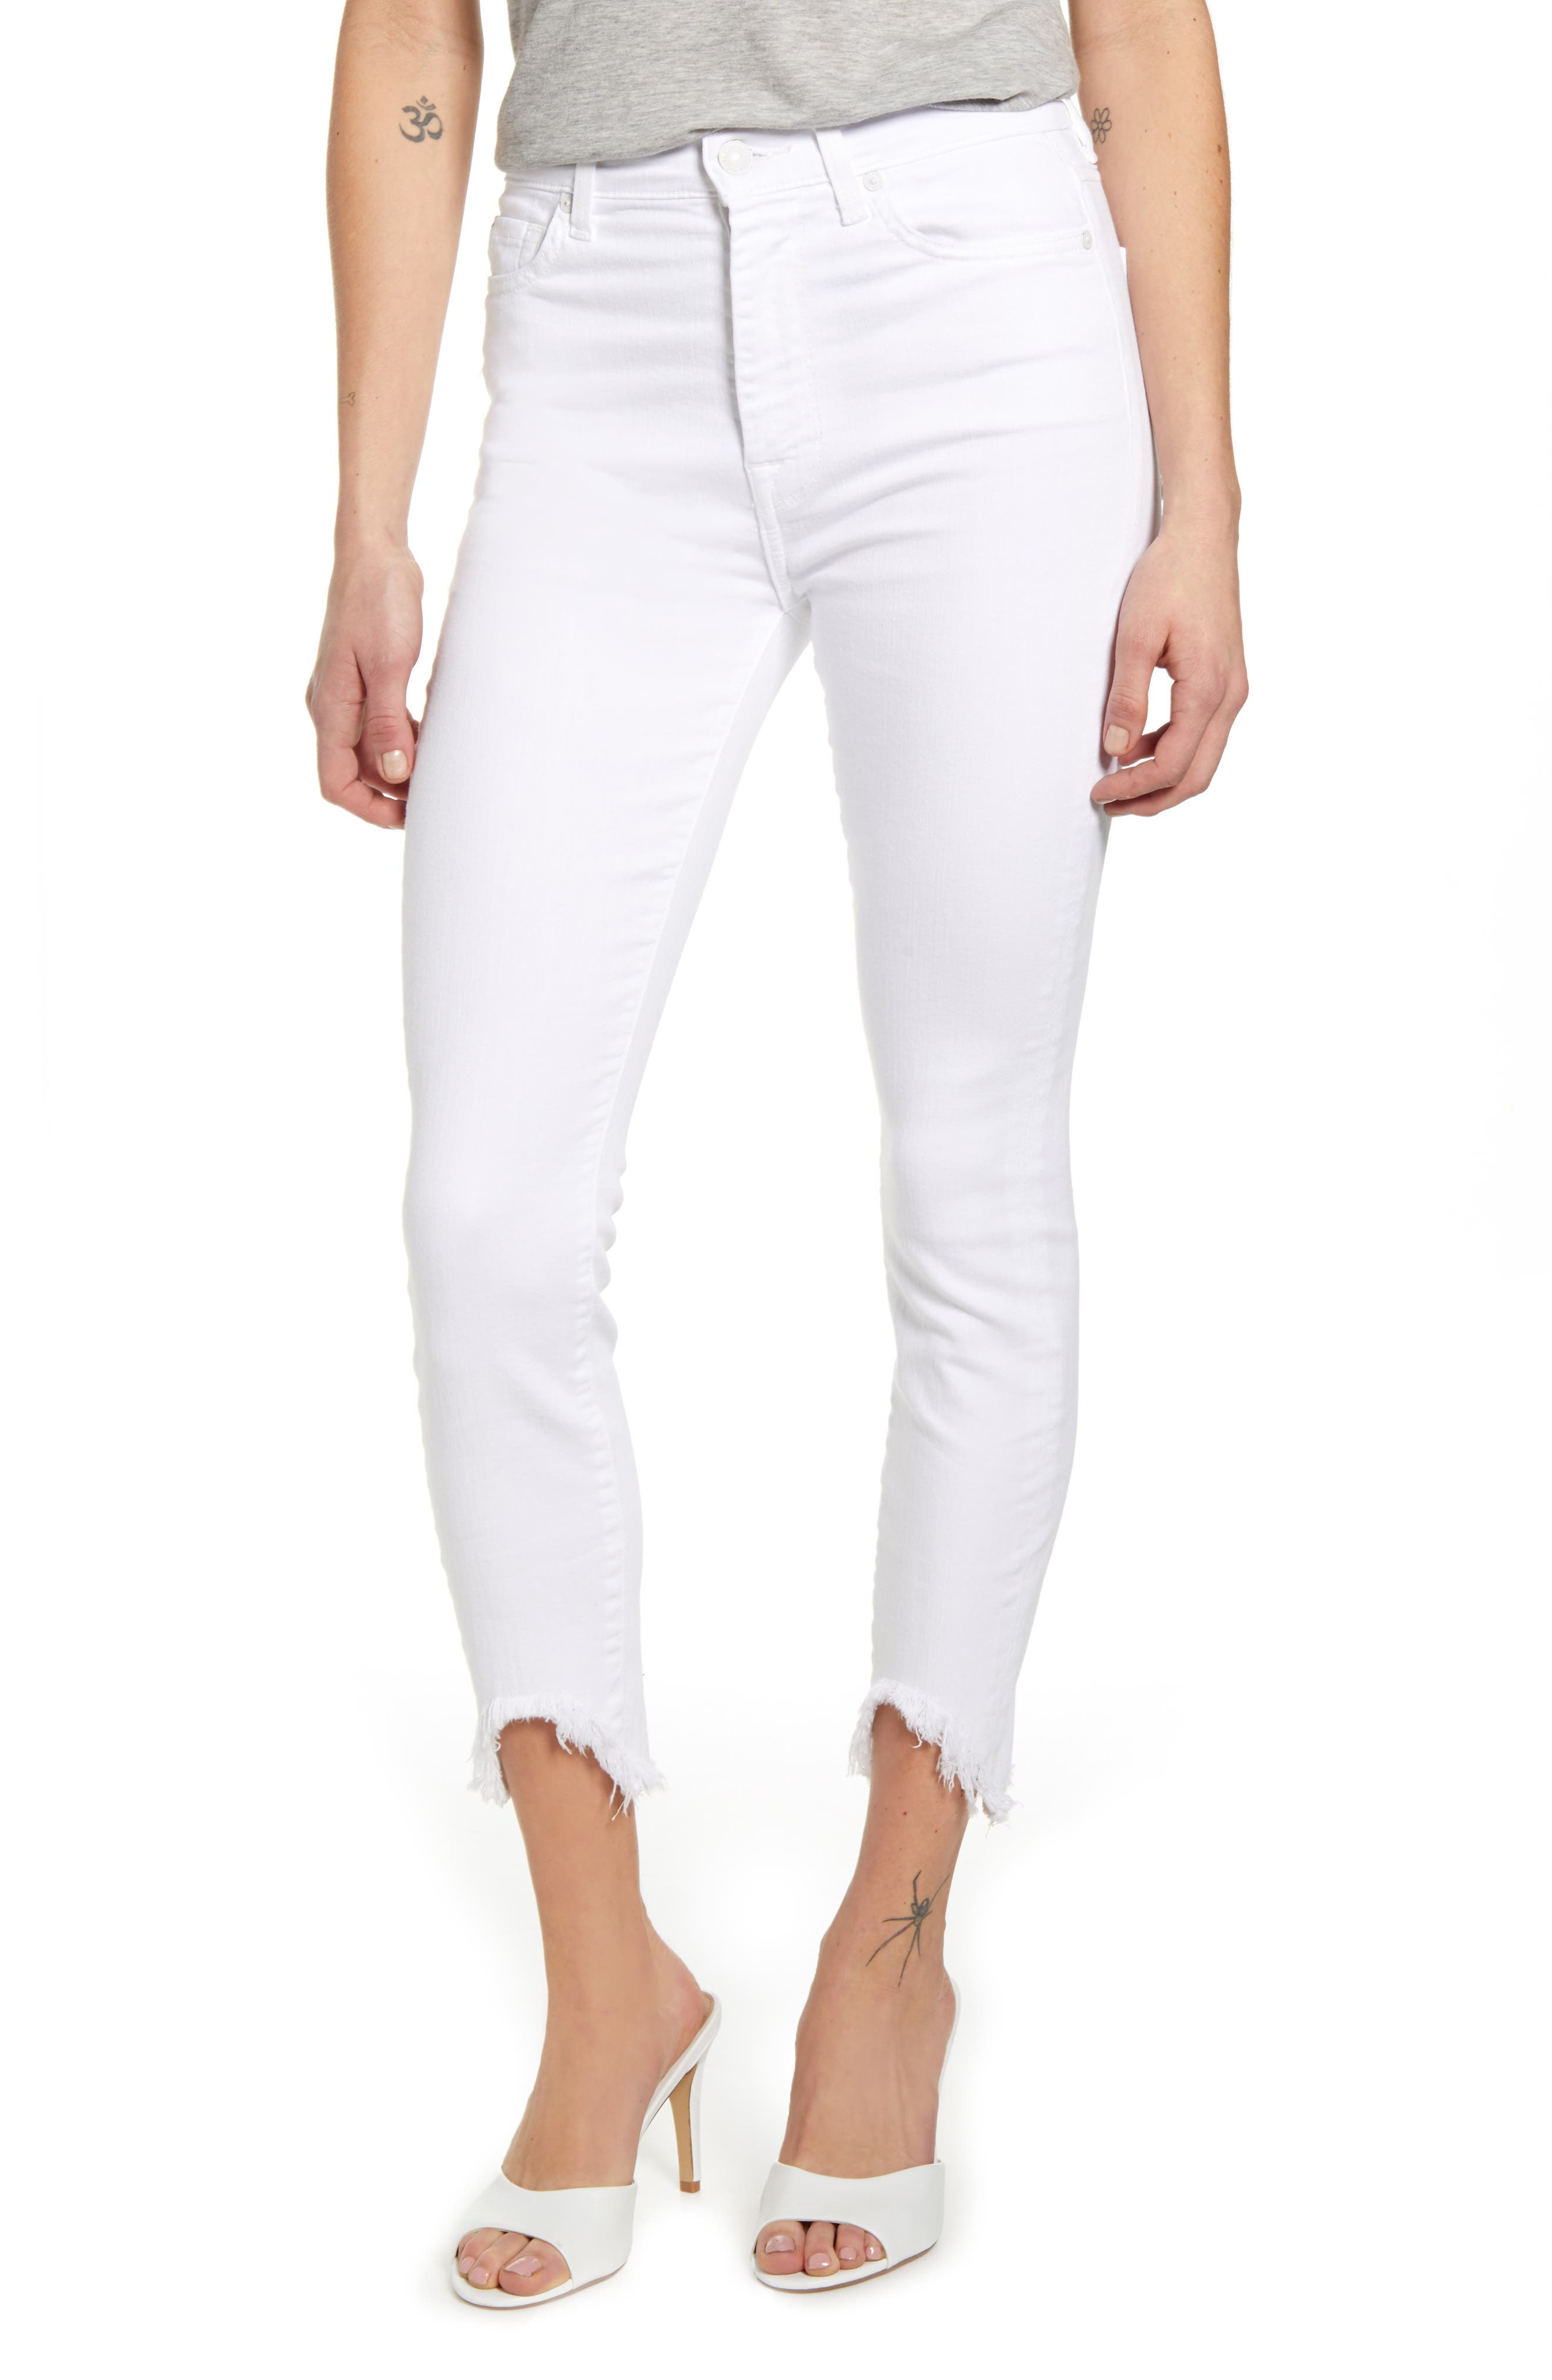 7 For All MankindR Women's 7 For All Mankind Fray Hem Ankle Skinny Jeans,  31 - White